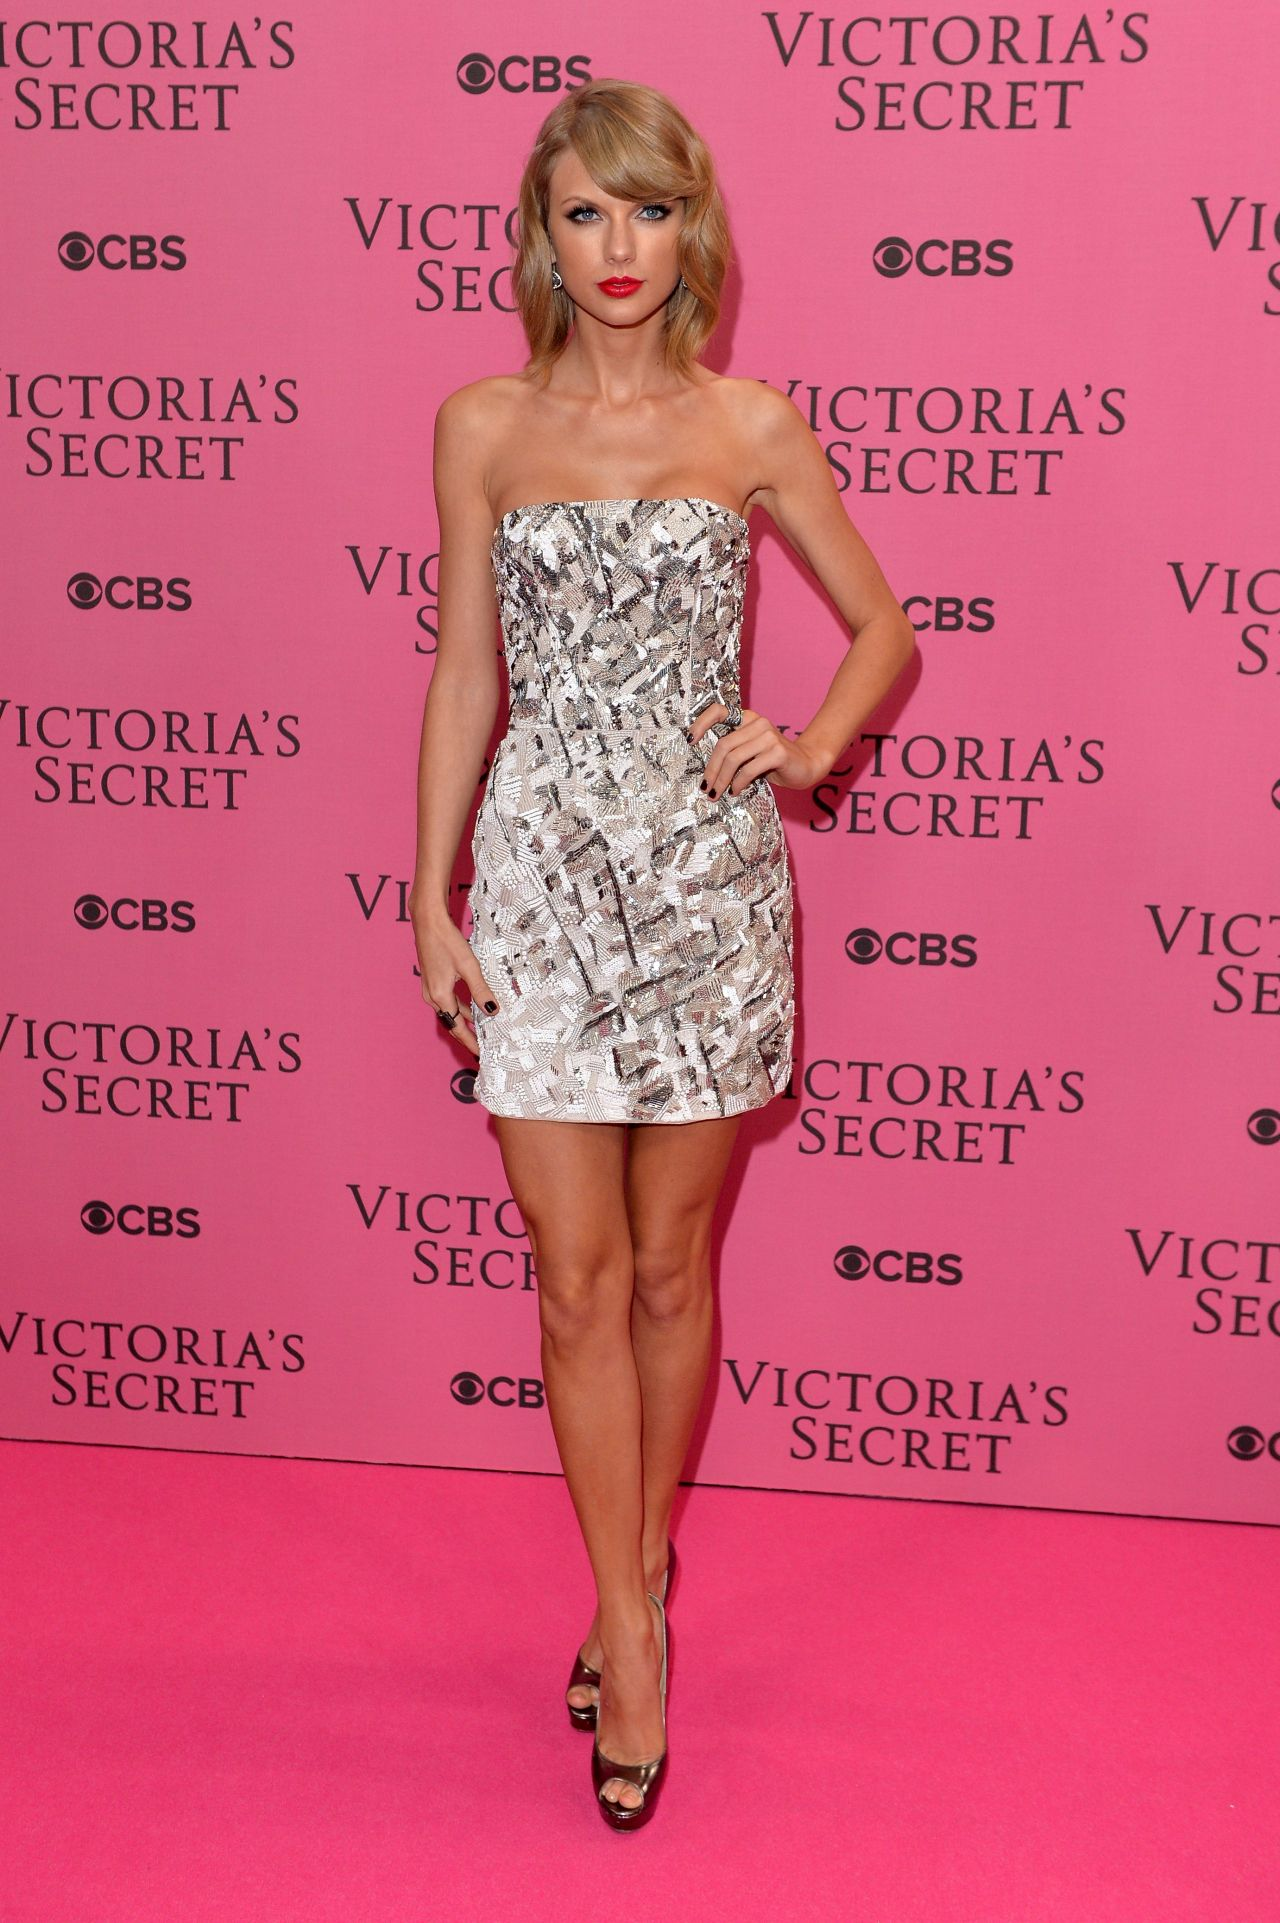 Old Fashioned Victoria Secret Prom Dresses Pictures - Wedding Dress ...